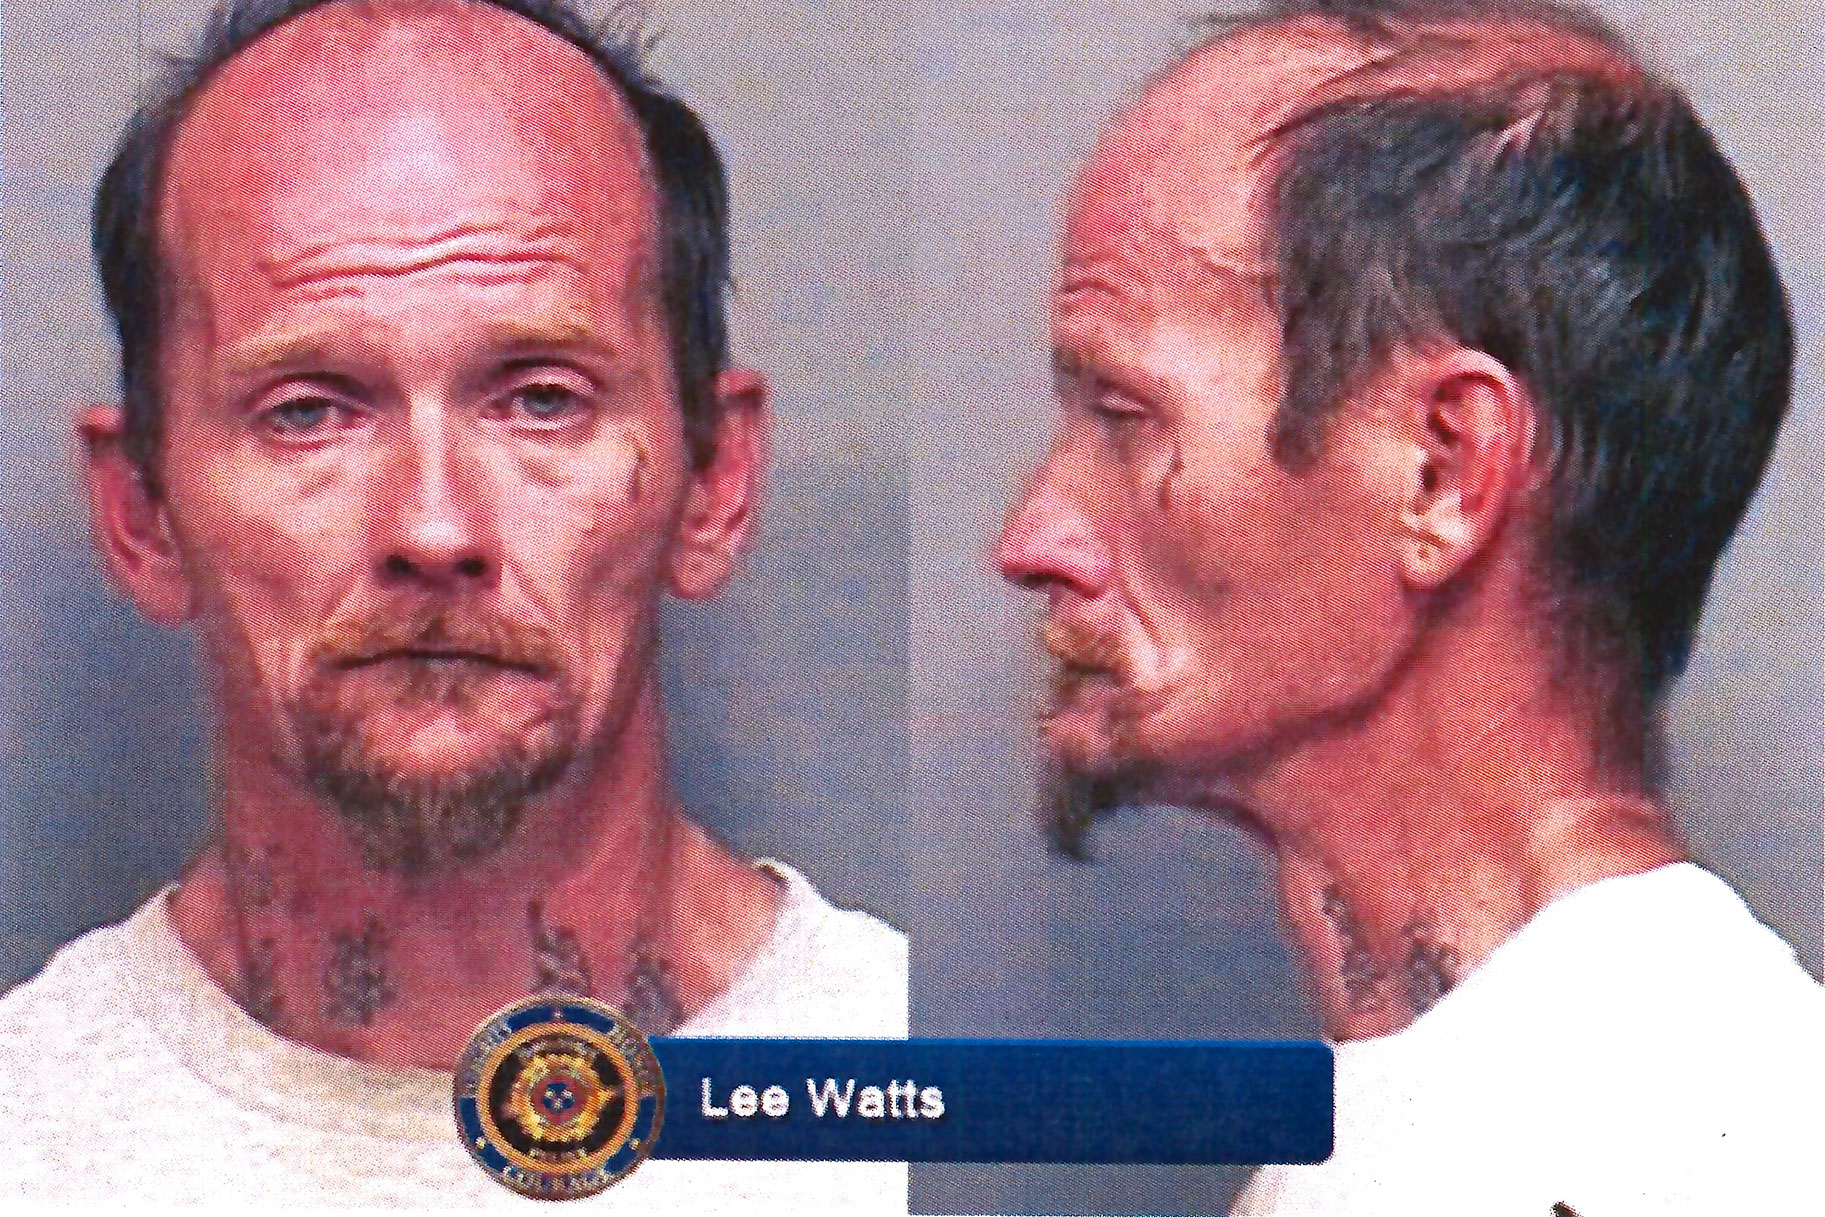 Lee Watts Pd